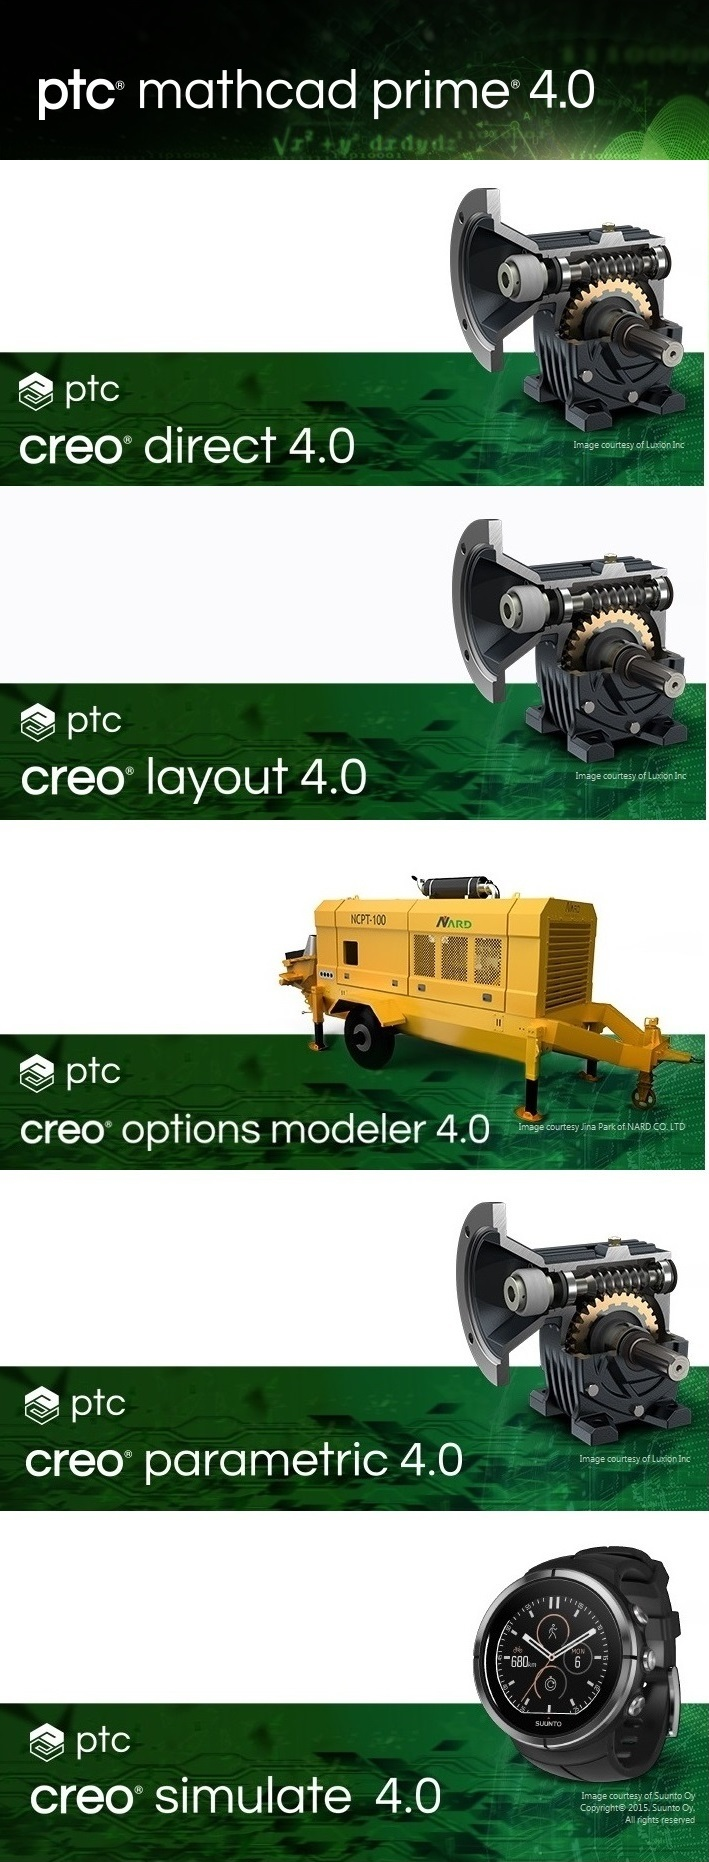 Download PTC Creo 4.0 M050 + HelpCenter Win64 full license forever